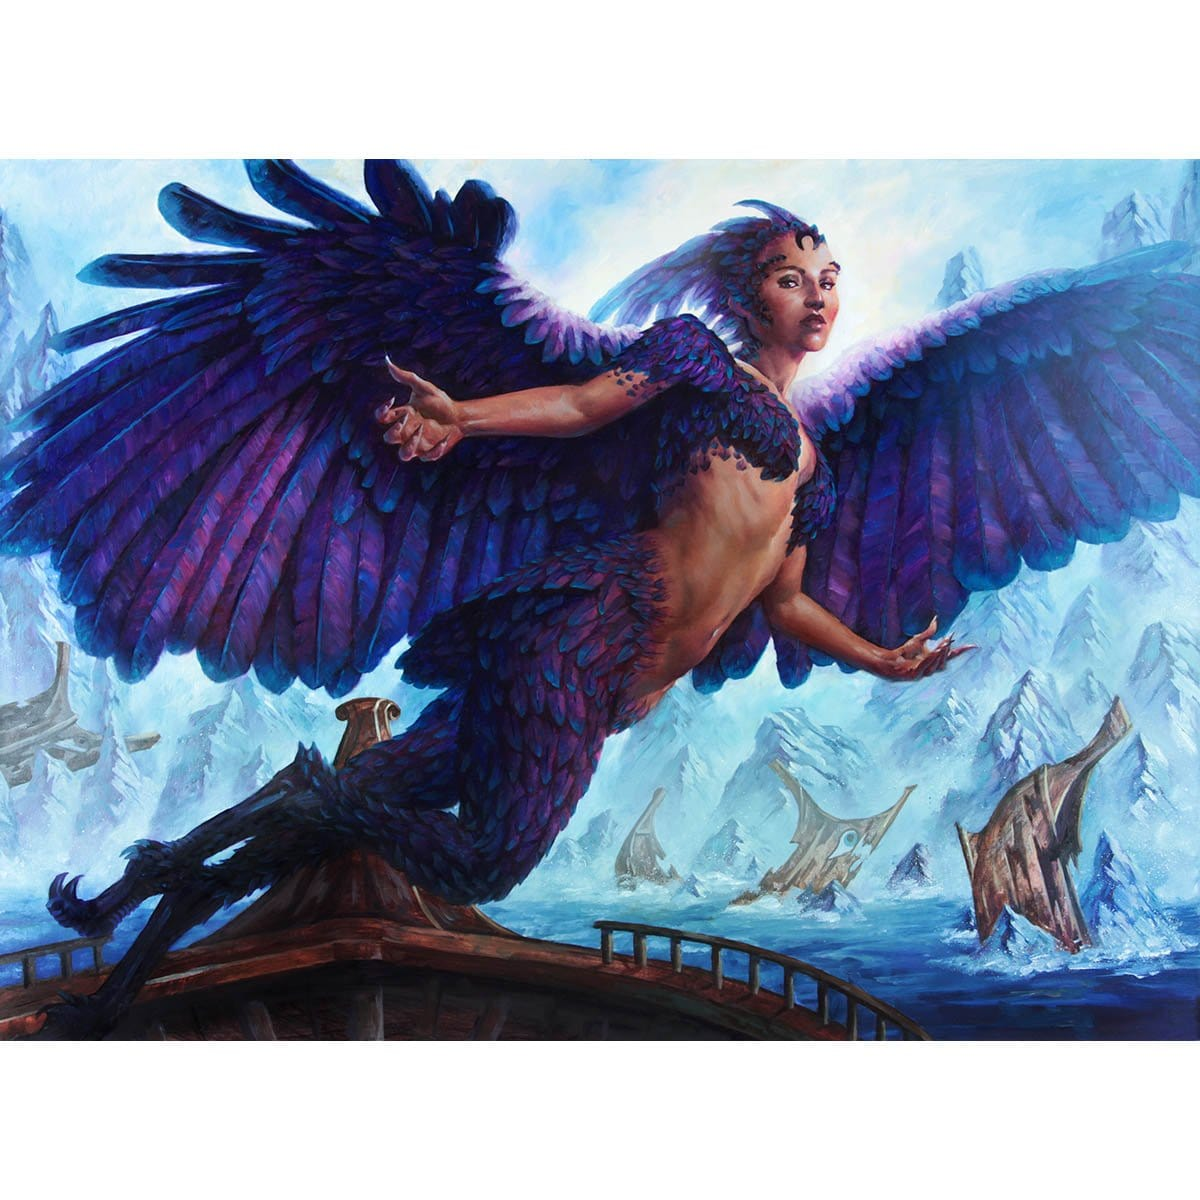 Siren of the Fanged Coast Print - Print - Original Magic Art - Accessories for Magic the Gathering and other card games